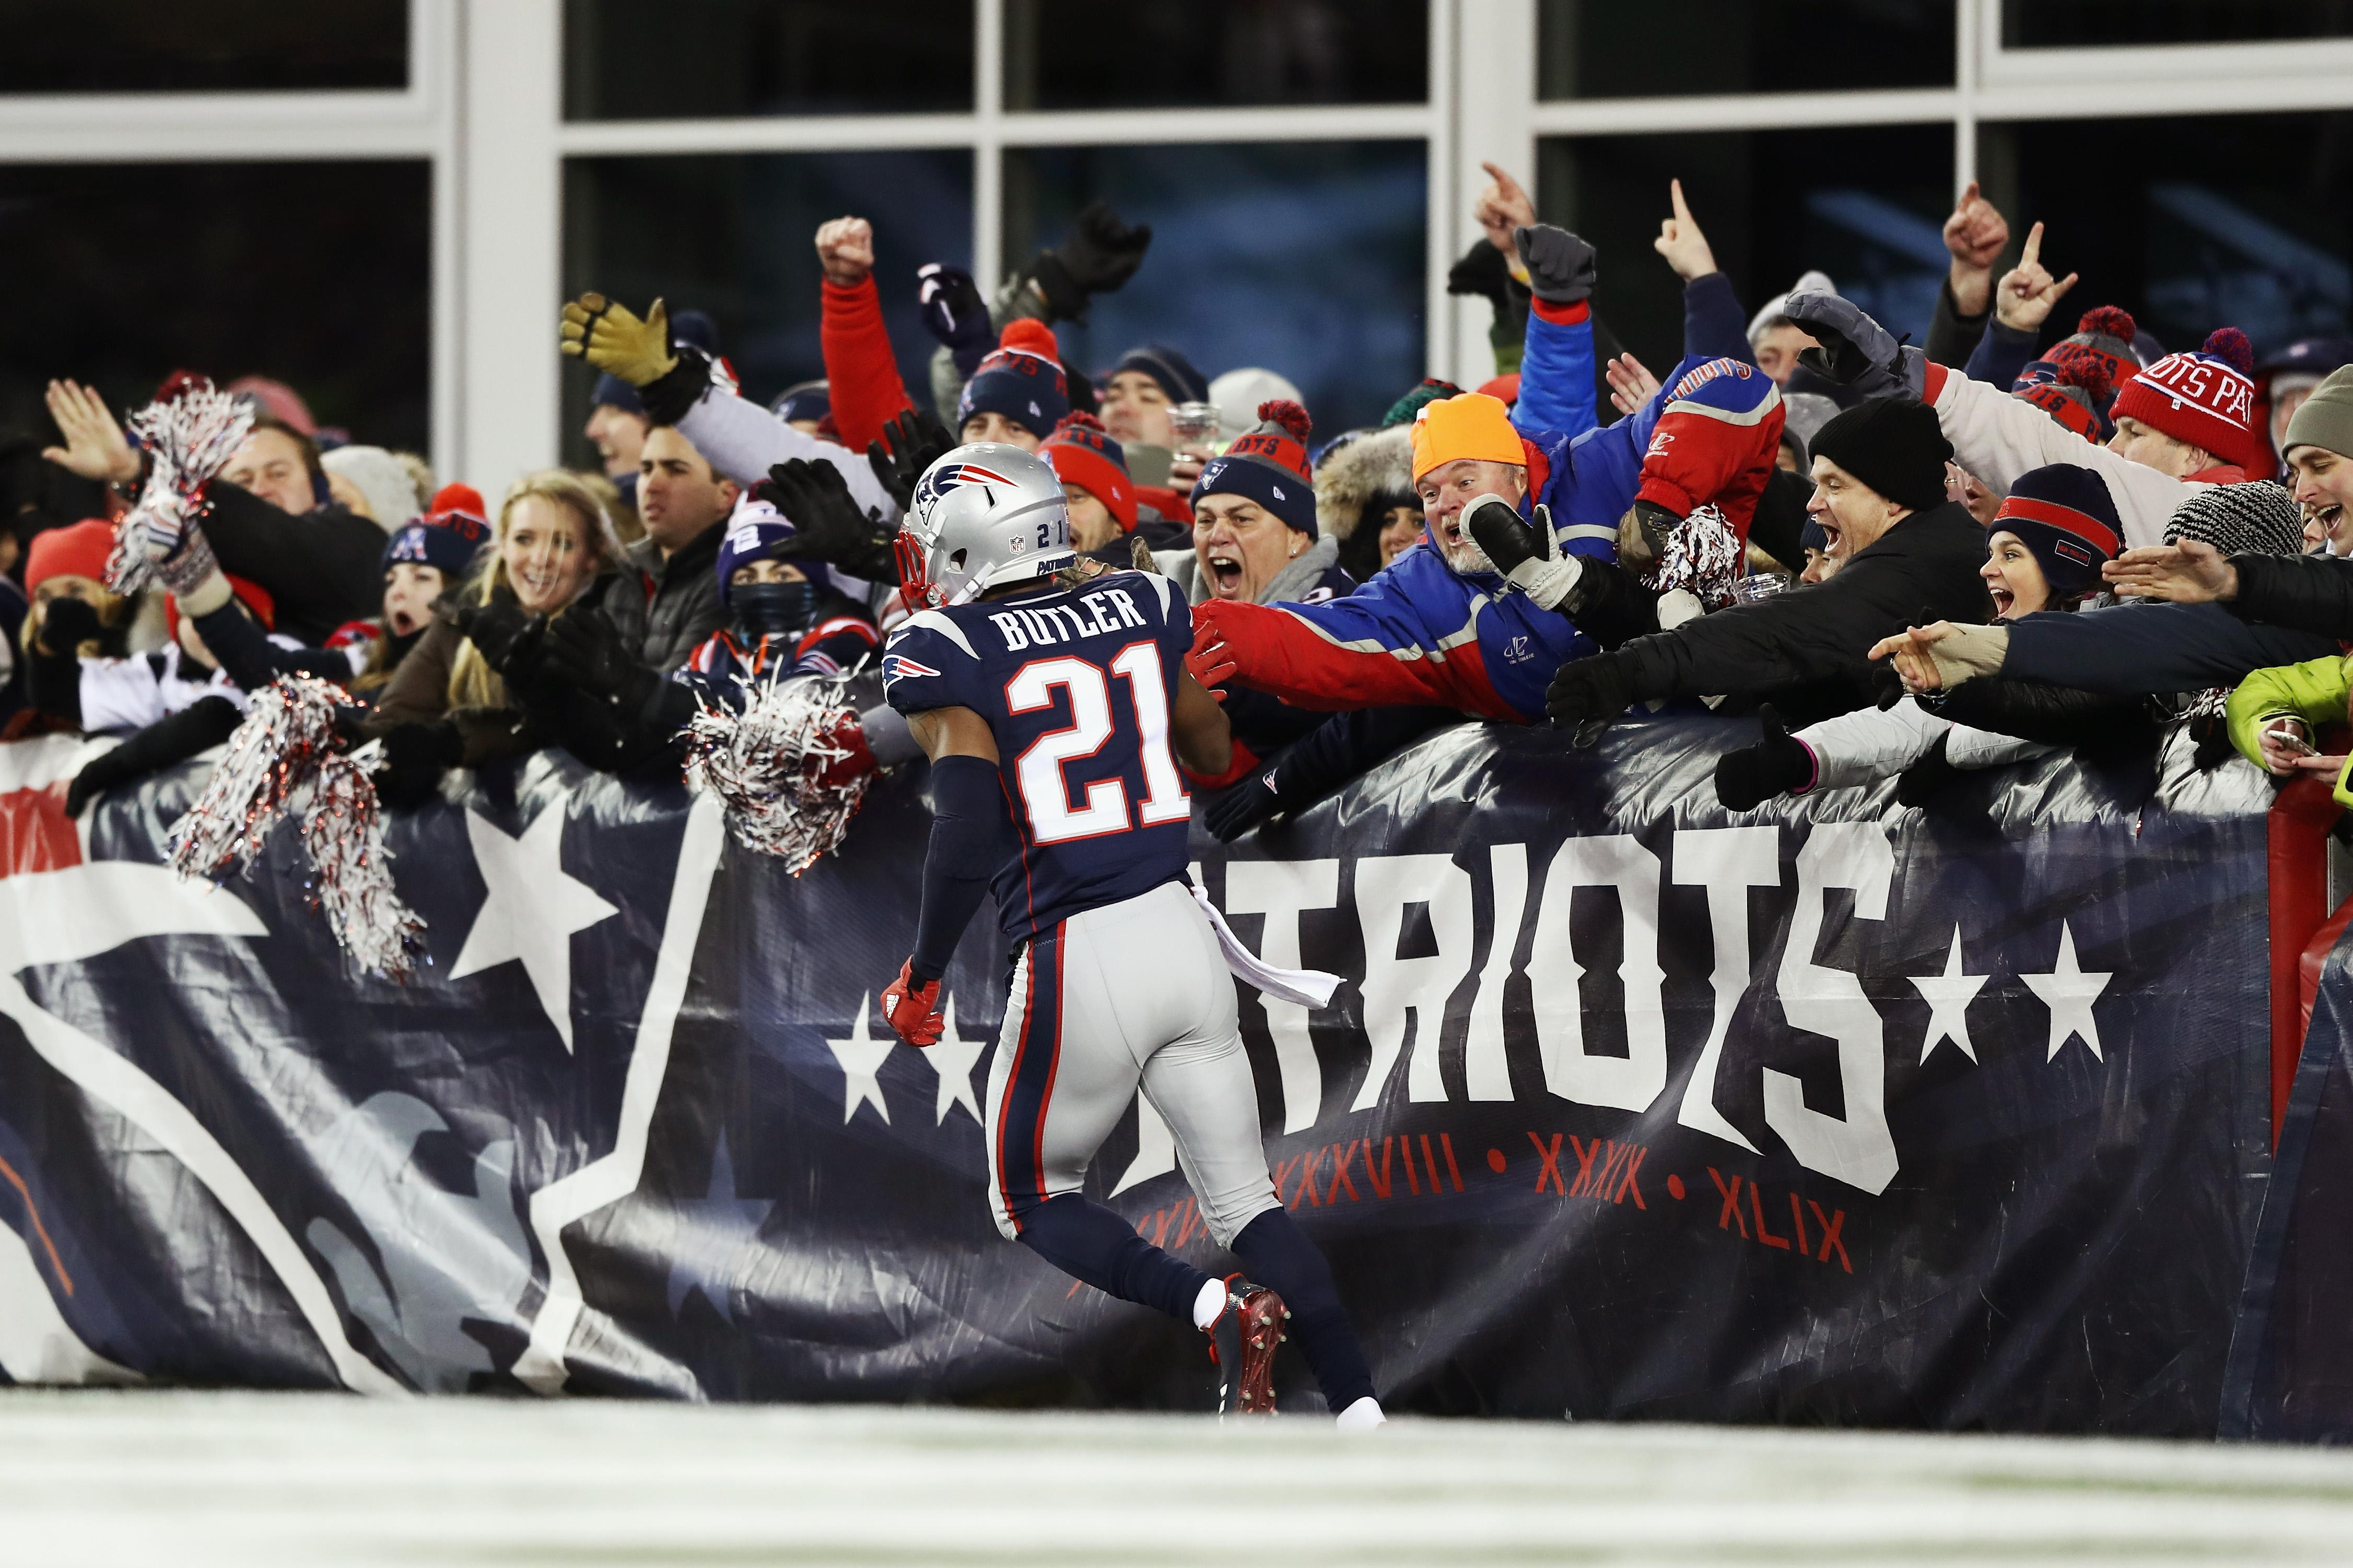 Butler has been a key part of the Patriots dynasty that appears to be heading for a third Super Bowl